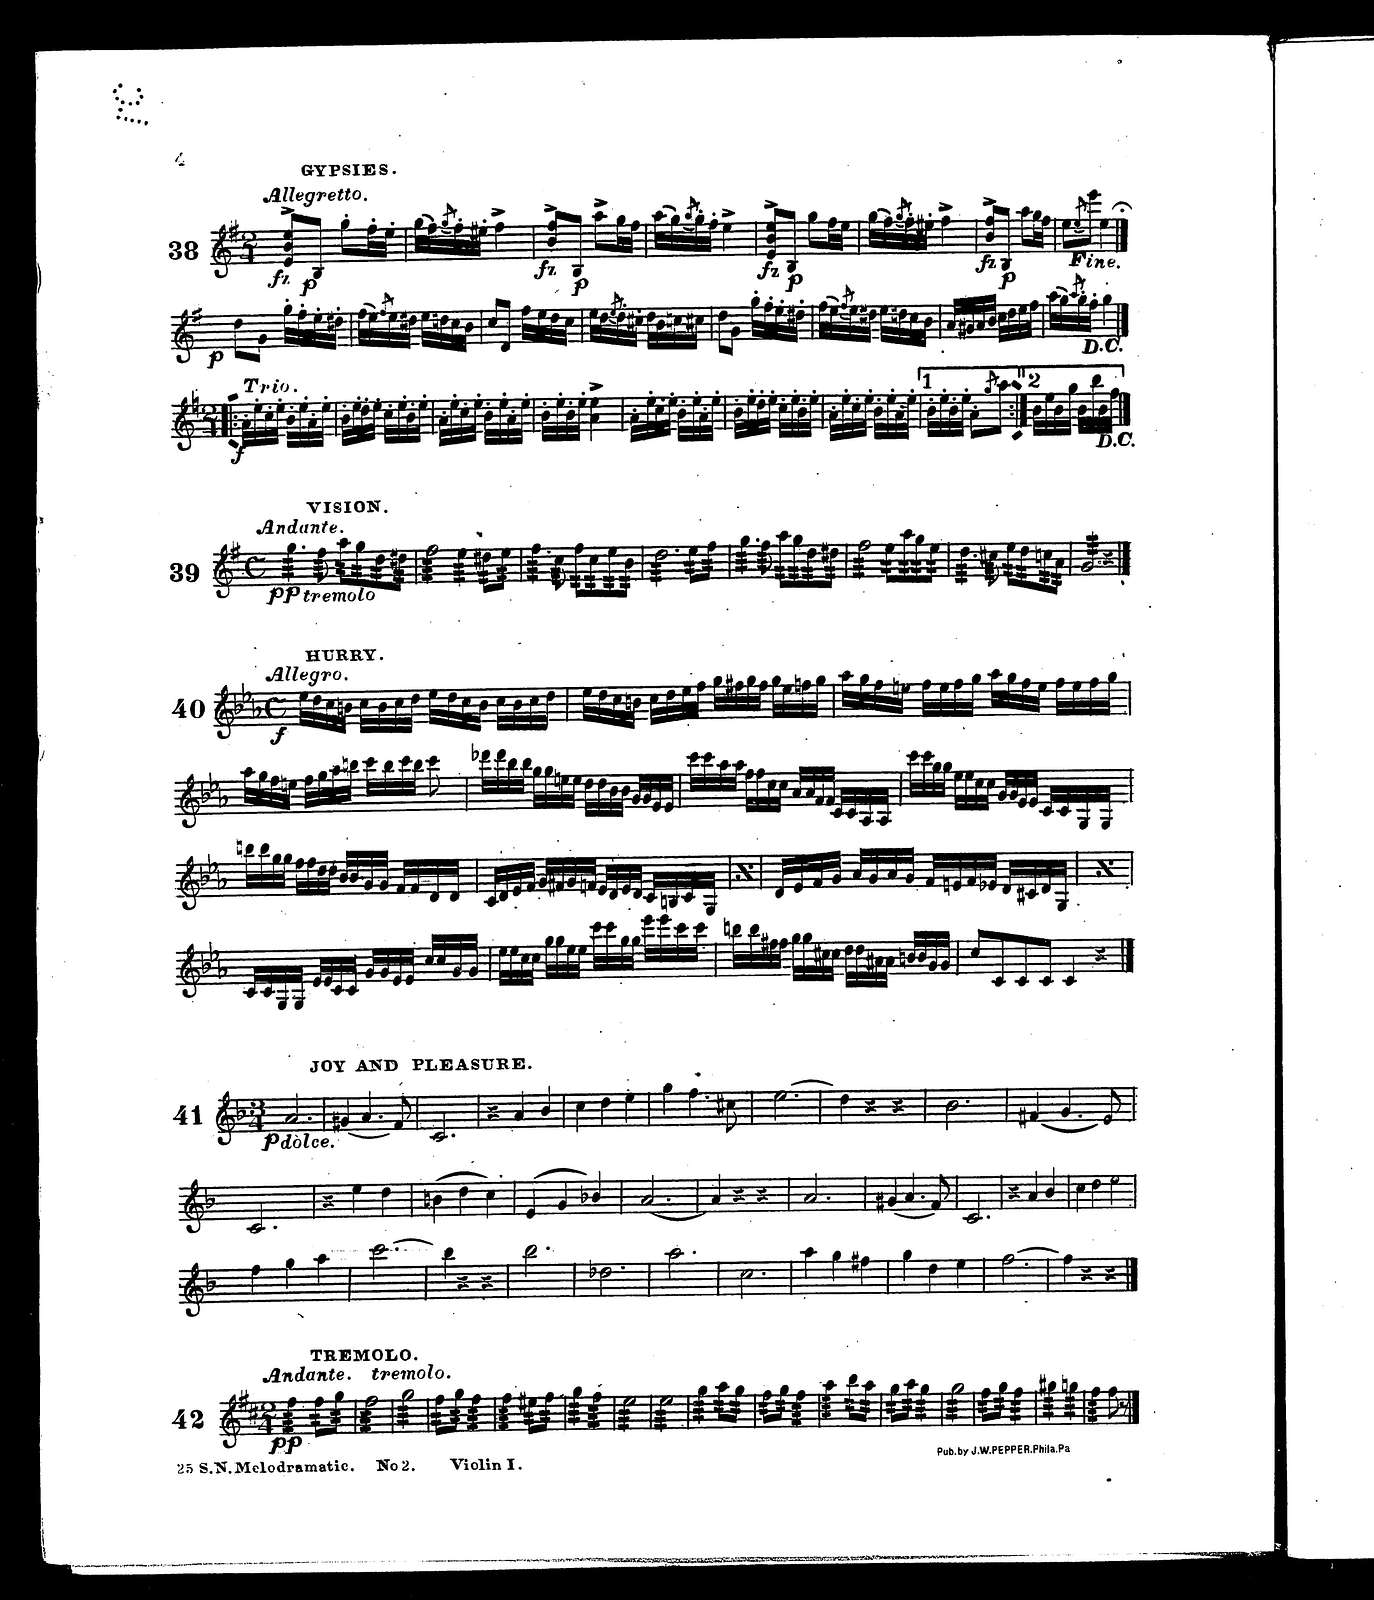 25 selected numbers; Melodramatic music, no. 2 orchestra